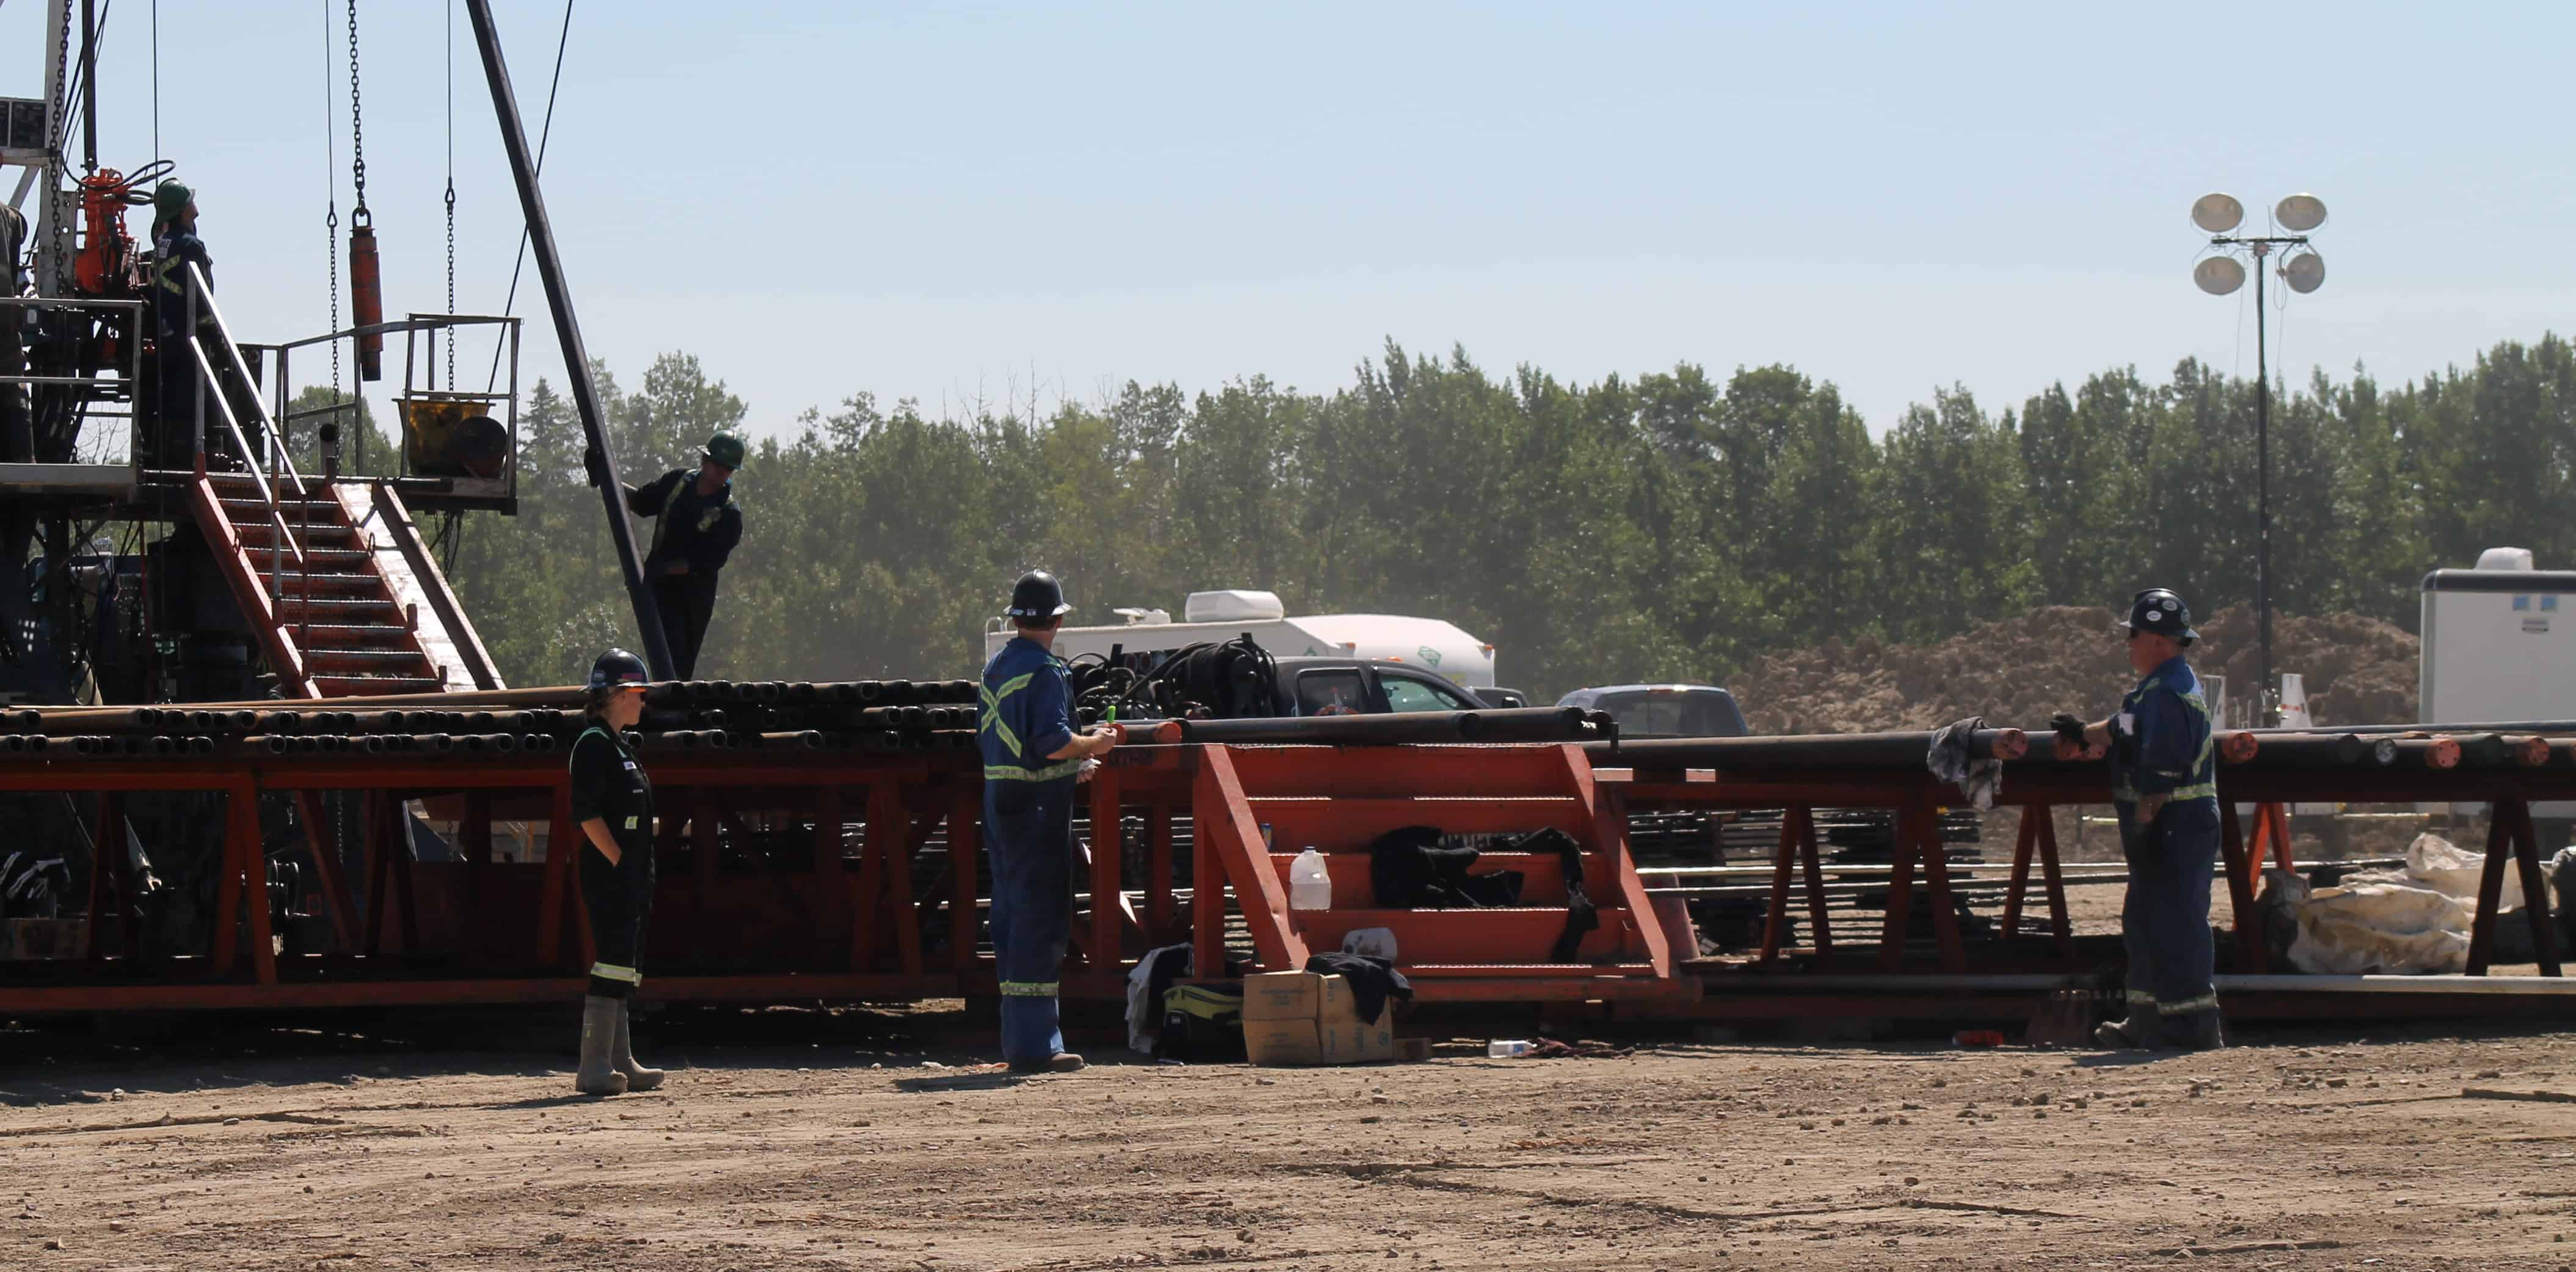 mud-creek-medics-oil-and-gas-alberta-highly-knowledgeable-e1407968841603